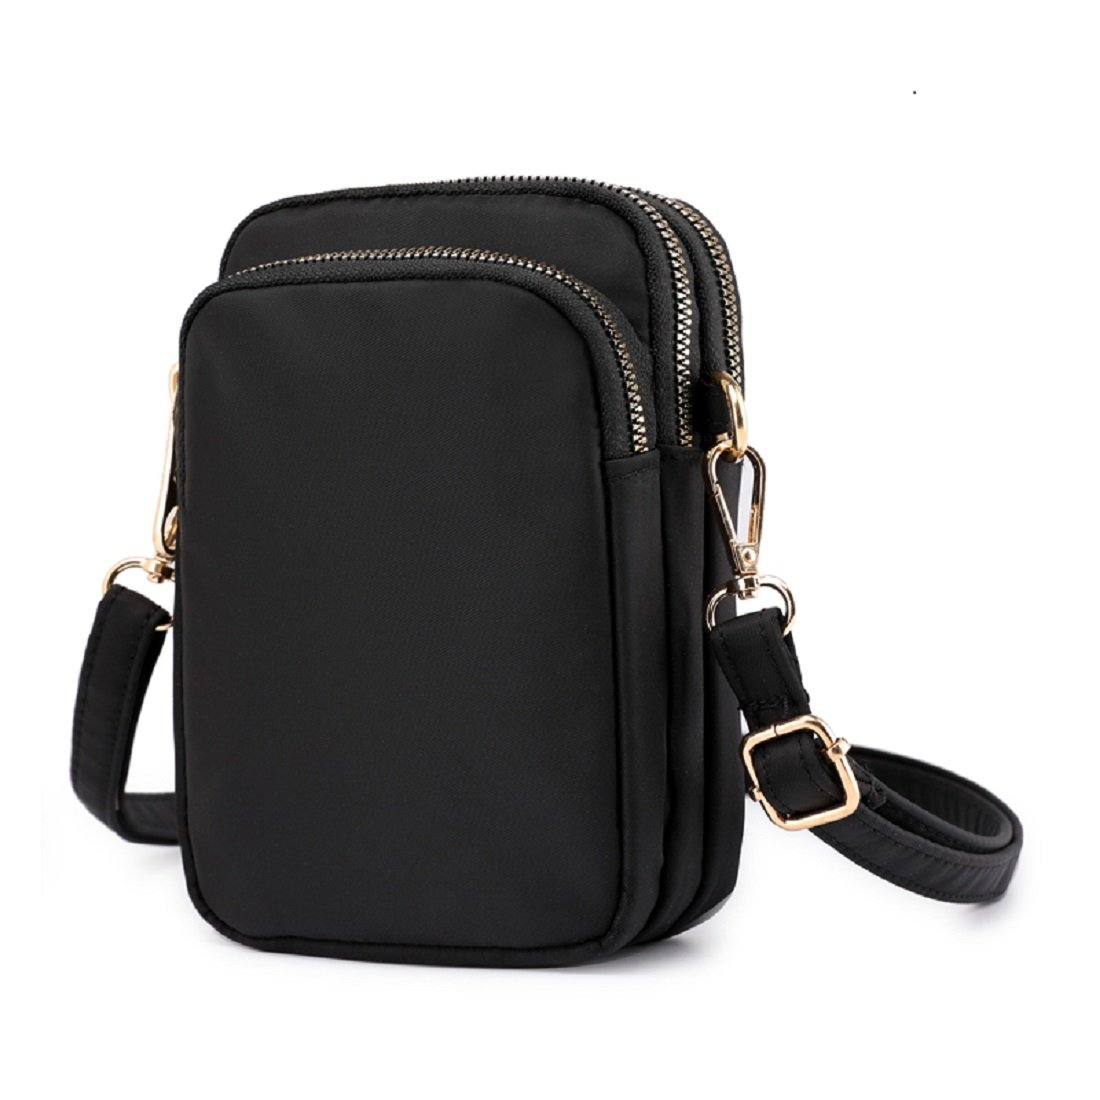 Cell Phone Purse Waterproof Nylon Small Crossbody Shoulder Bag Smartphone Holder Wallet For Women (Black) by TooTa